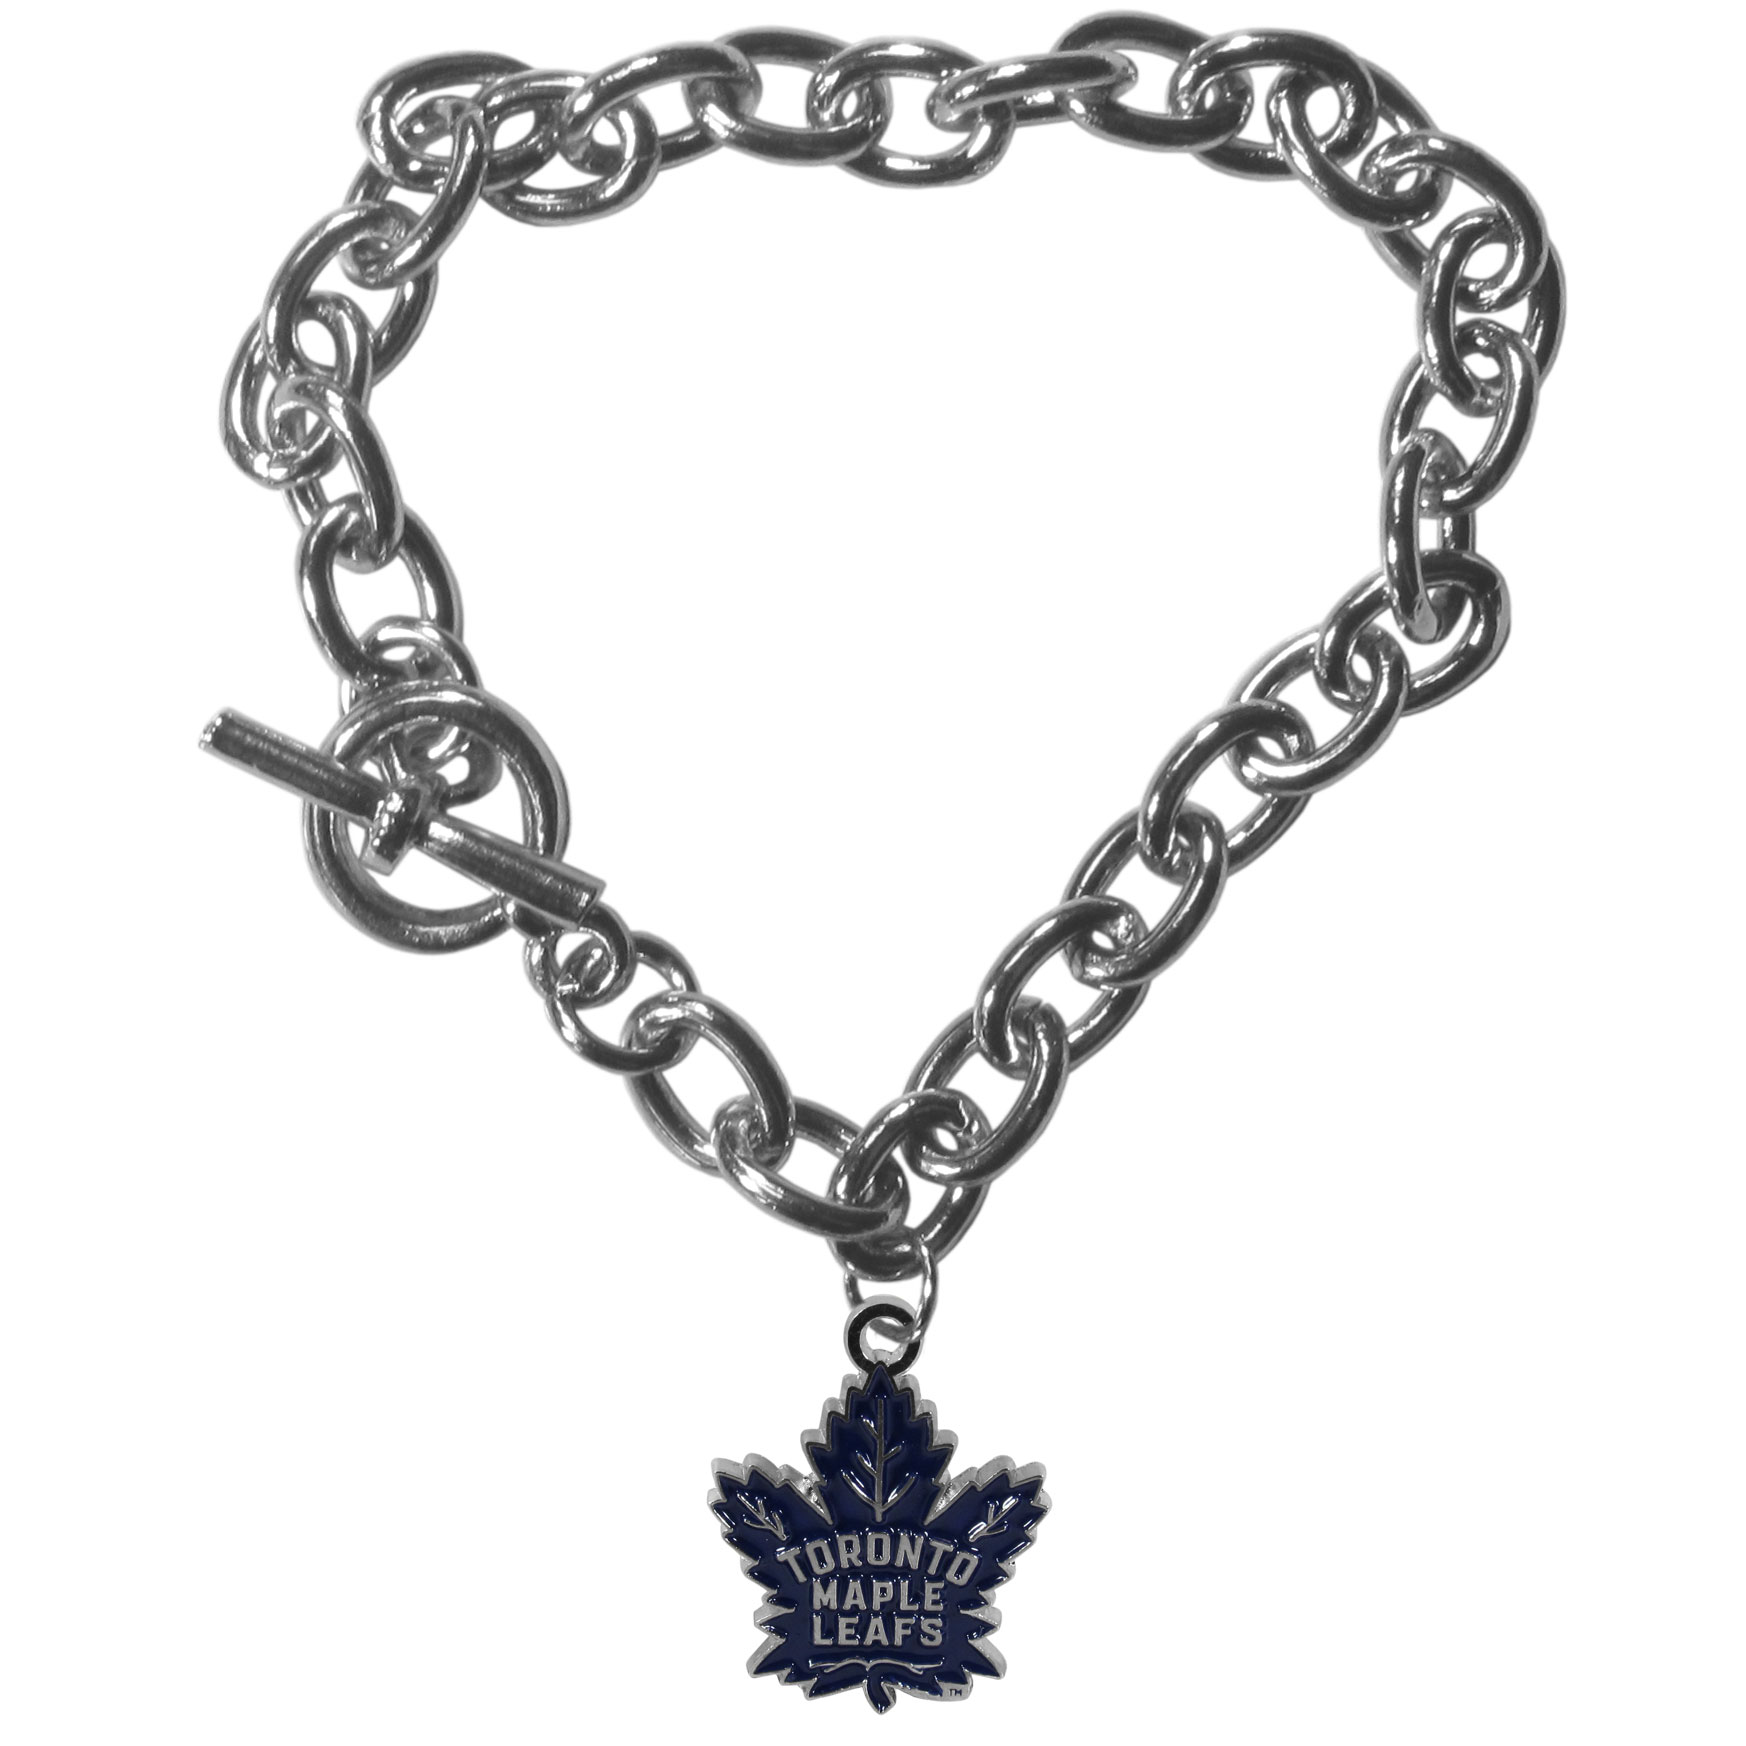 Toronto Maple Leafs® Charm Chain Bracelet - Our classic single charm bracelet is a great way to show off your team pride! The 7.5 inch large link chain features a high polish Toronto Maple Leafs® charm and features a toggle clasp which makes it super easy to take on and off.